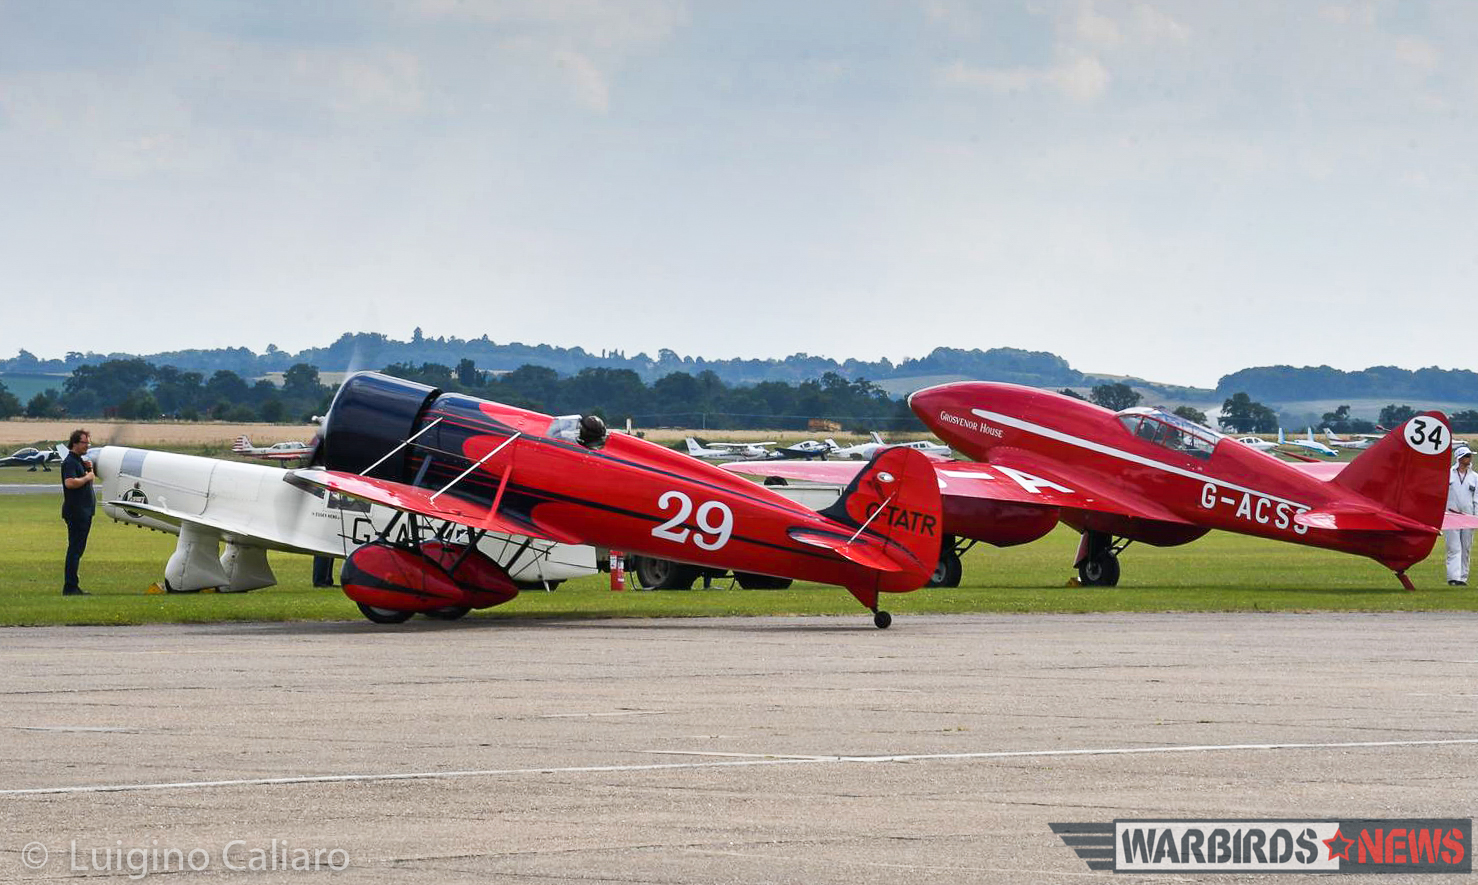 The racers taxiing out for takeoff. (photo by Luigino Caliaro)